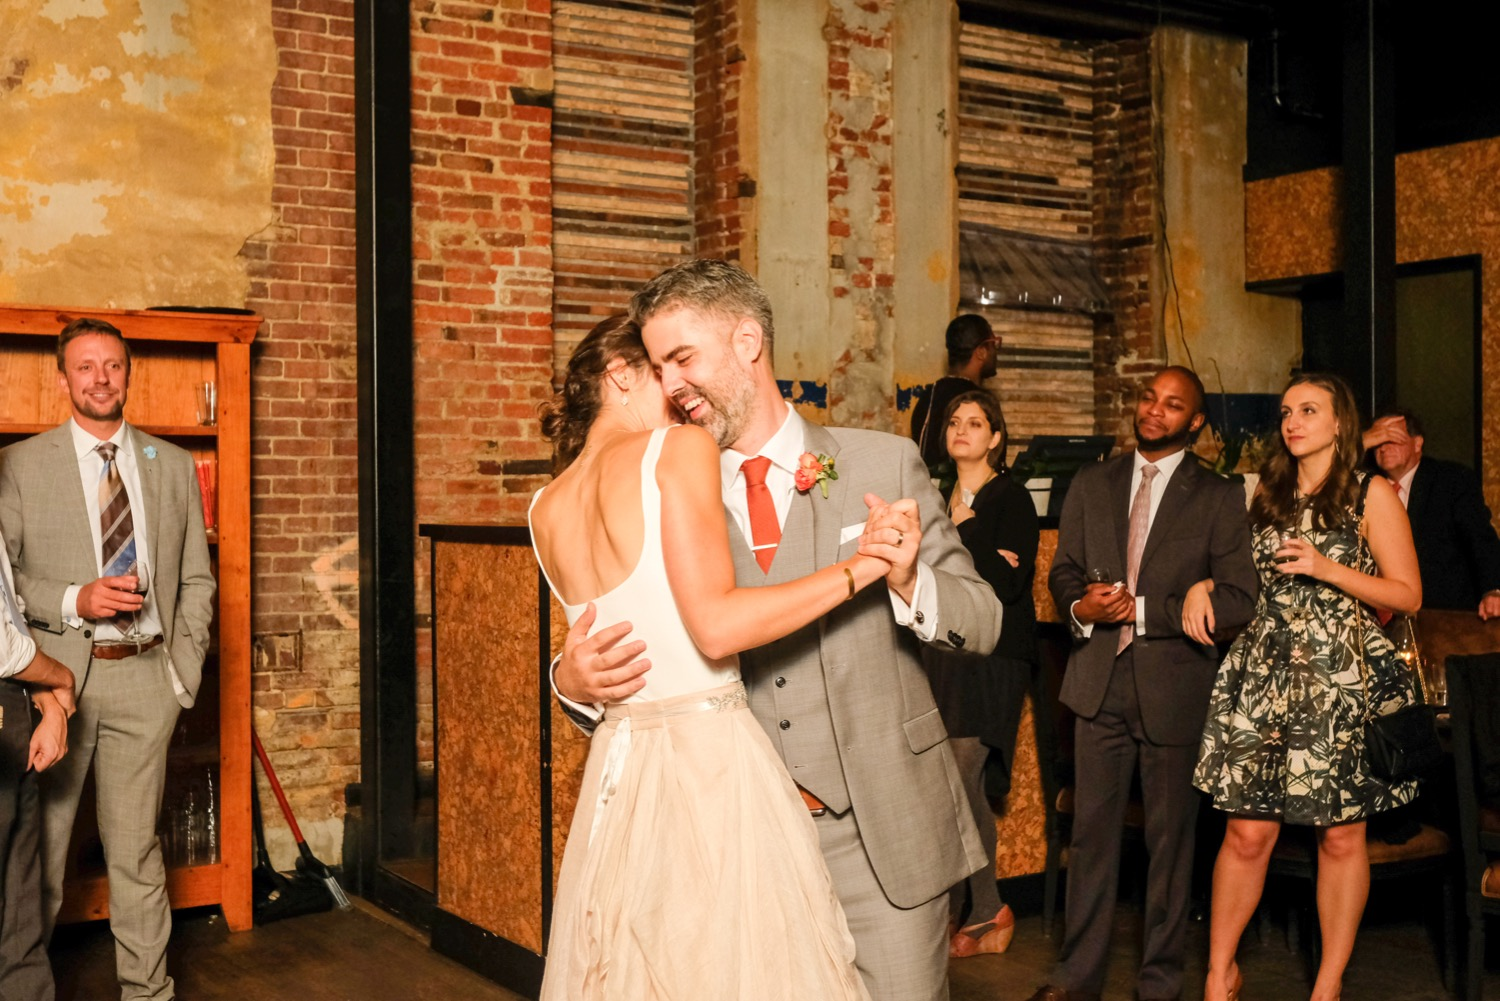 Baby Whale Wedding Reception | Washington DC Wedding Photographer